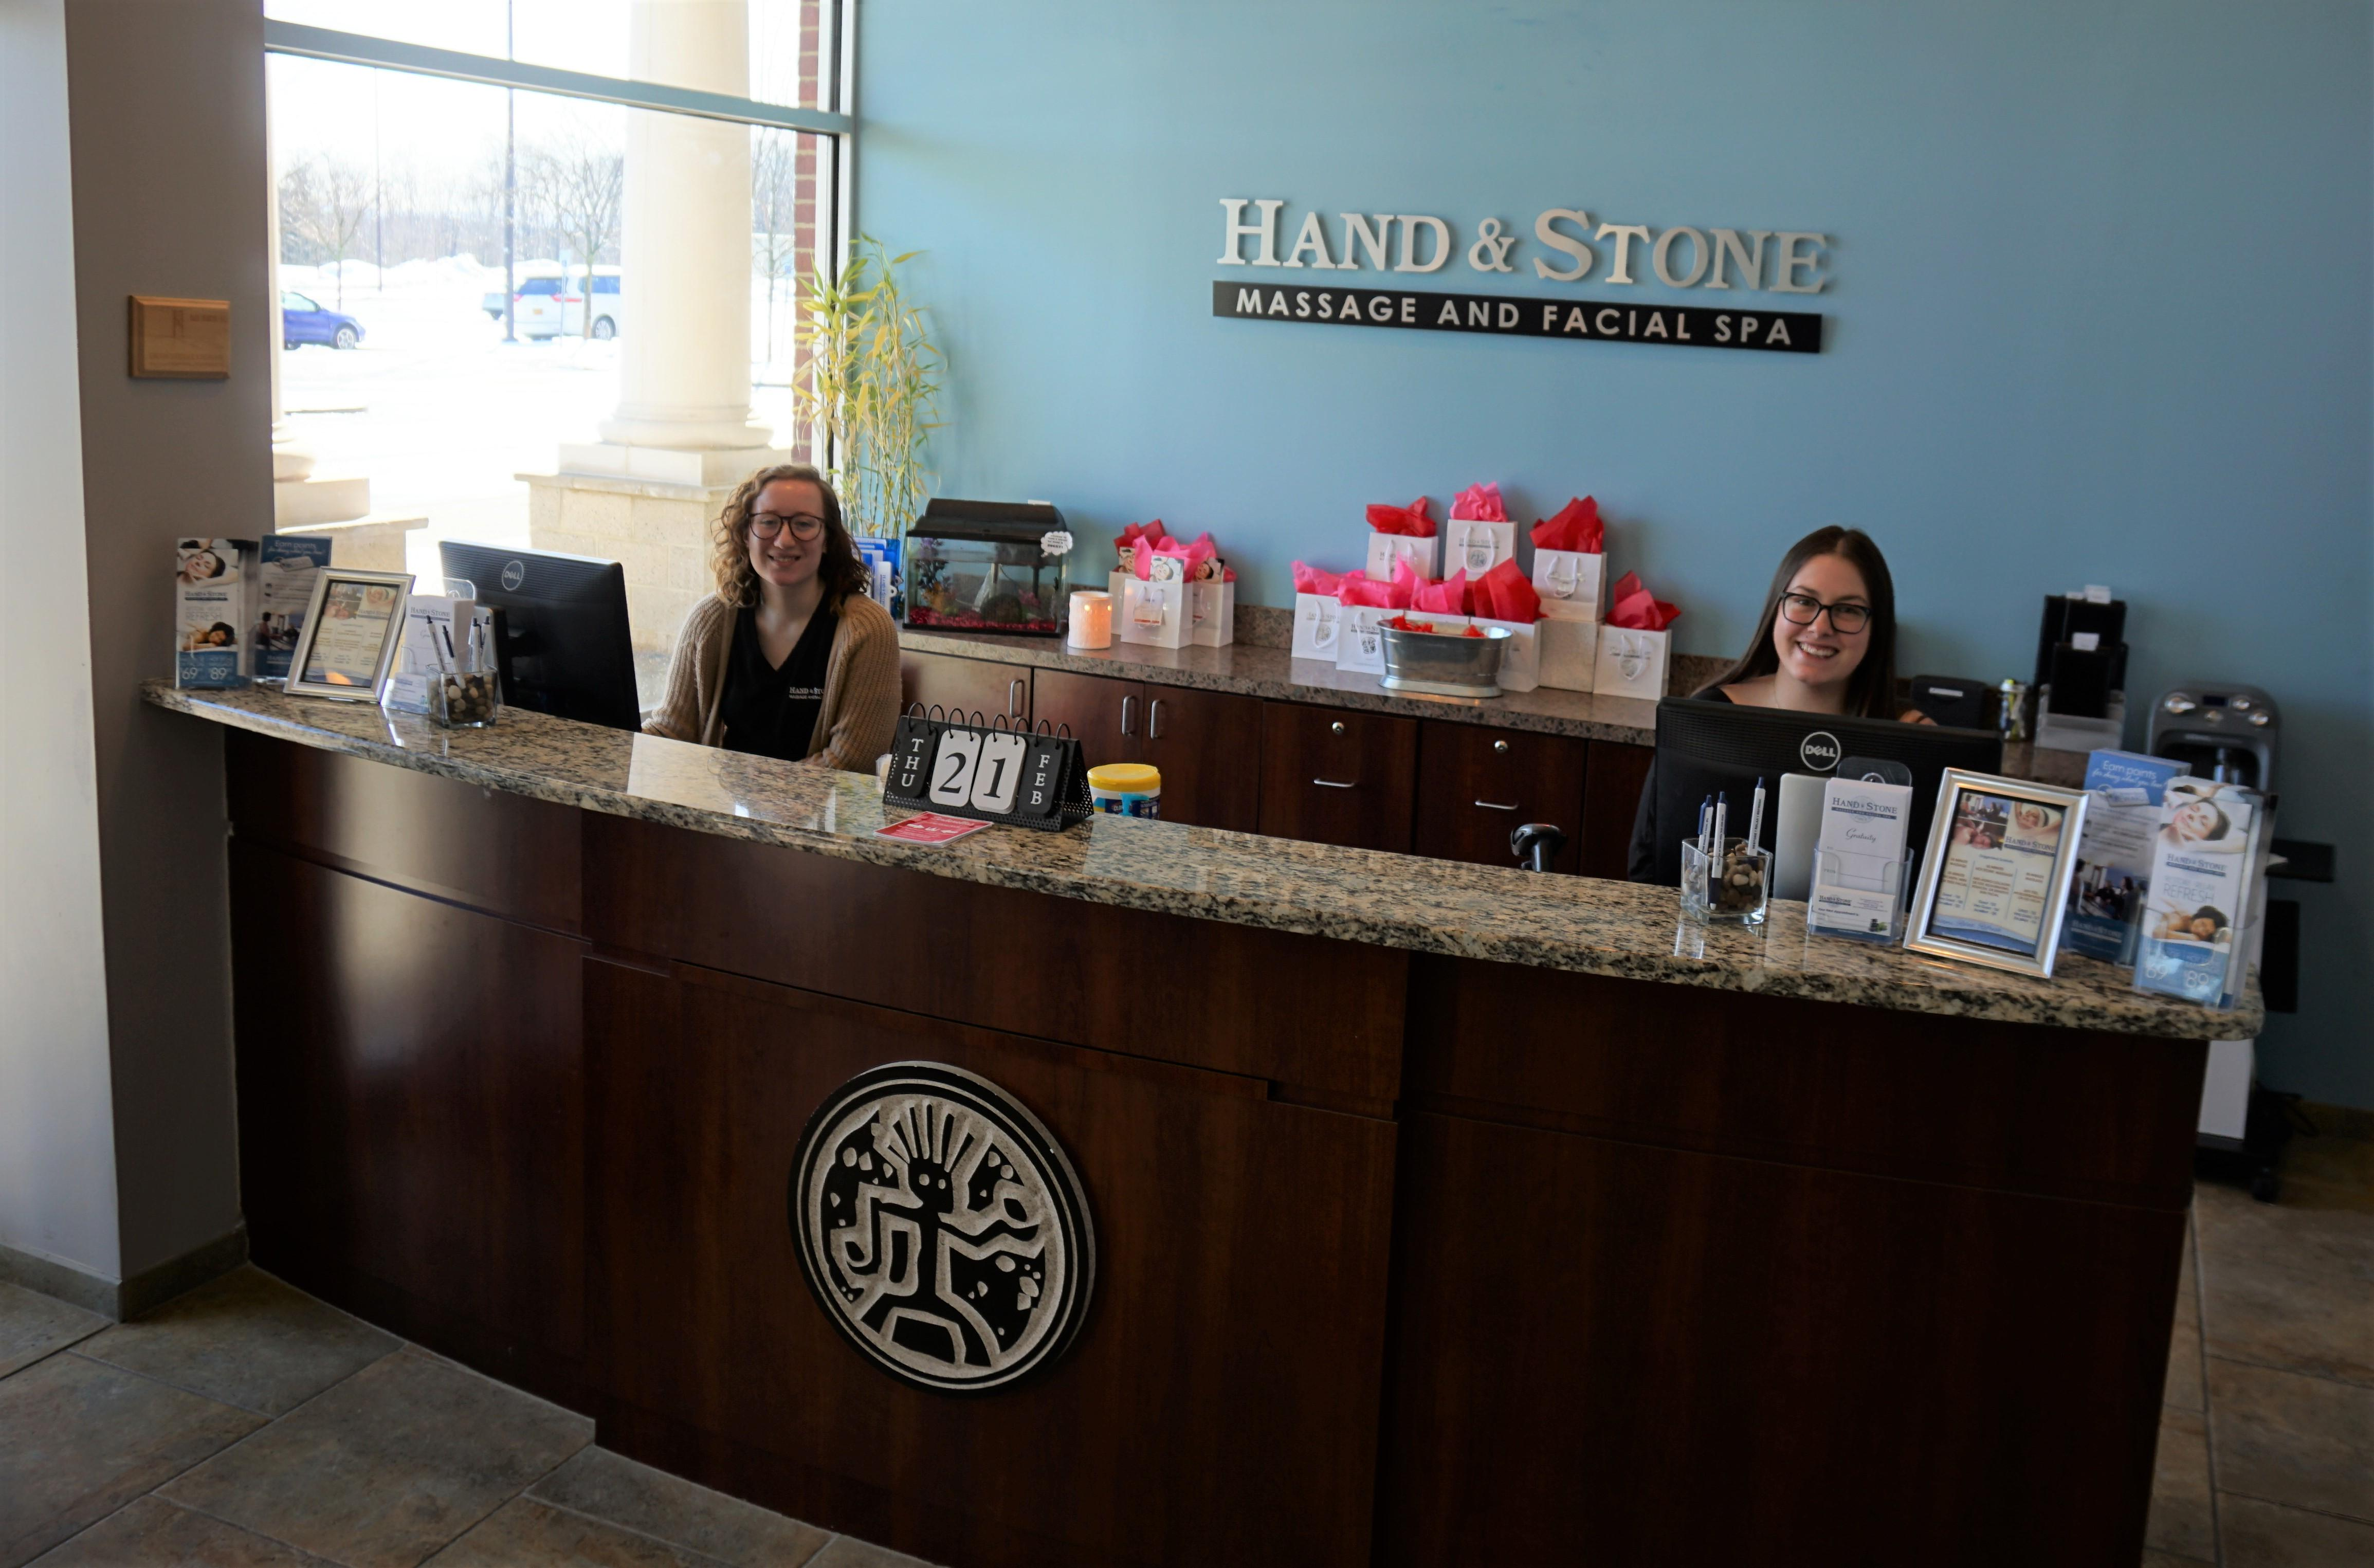 Hand & Stone's front desk!